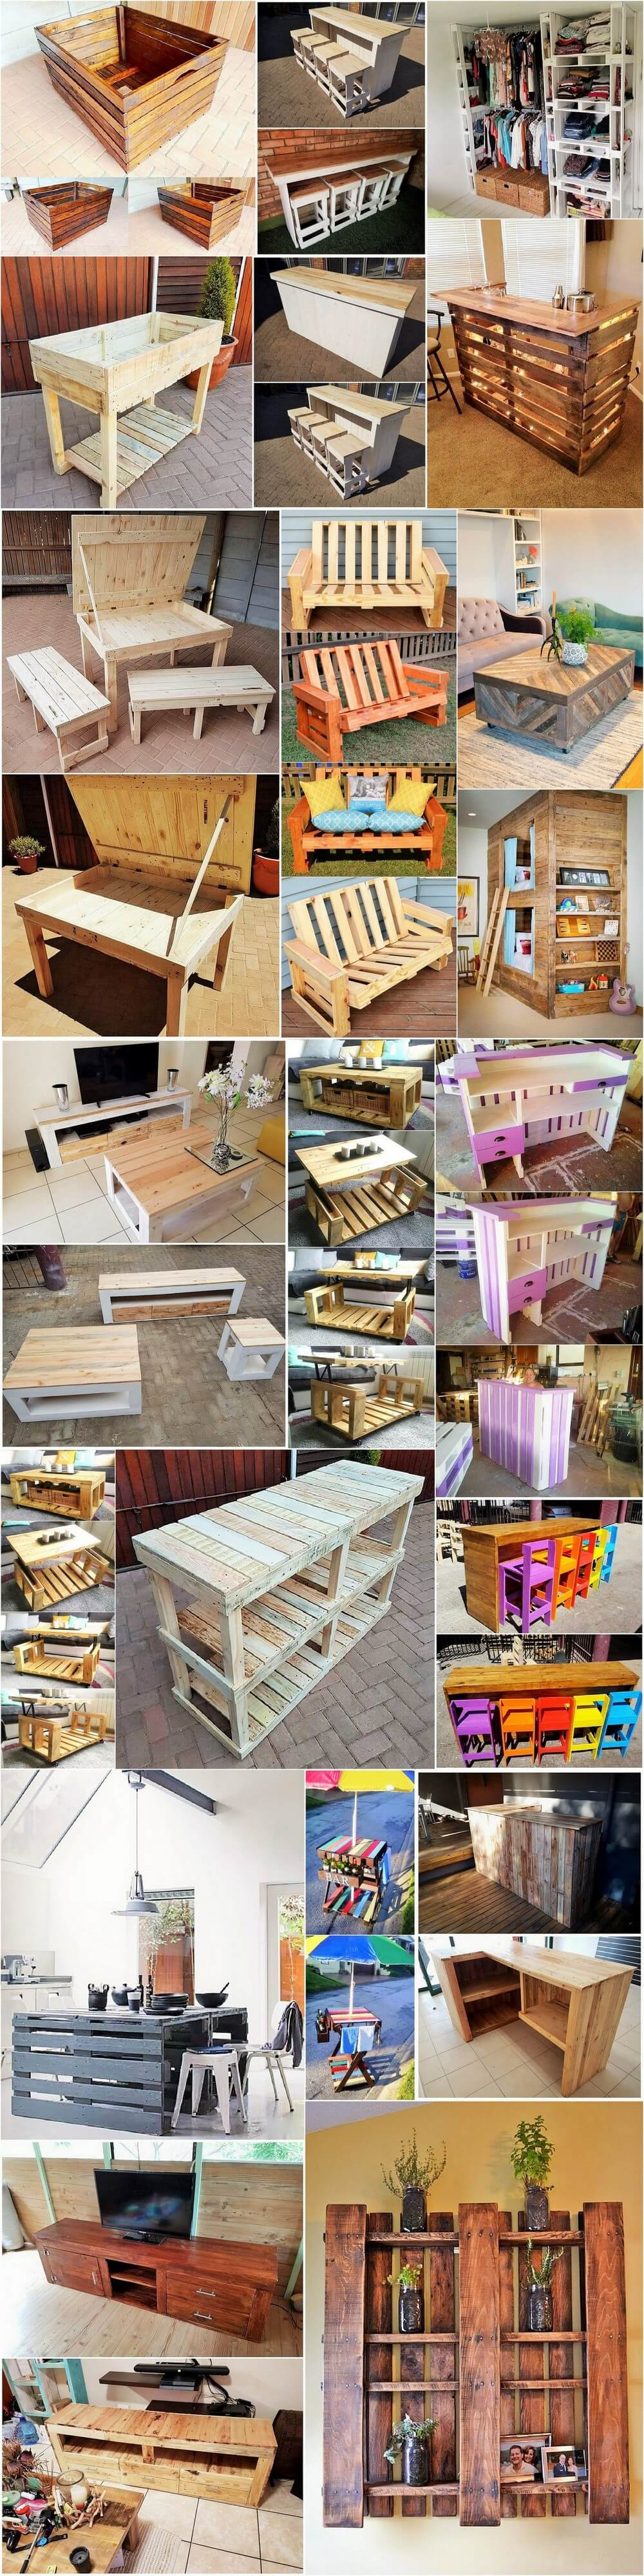 DIY Creative Ideas With Old Wood Pallets 1